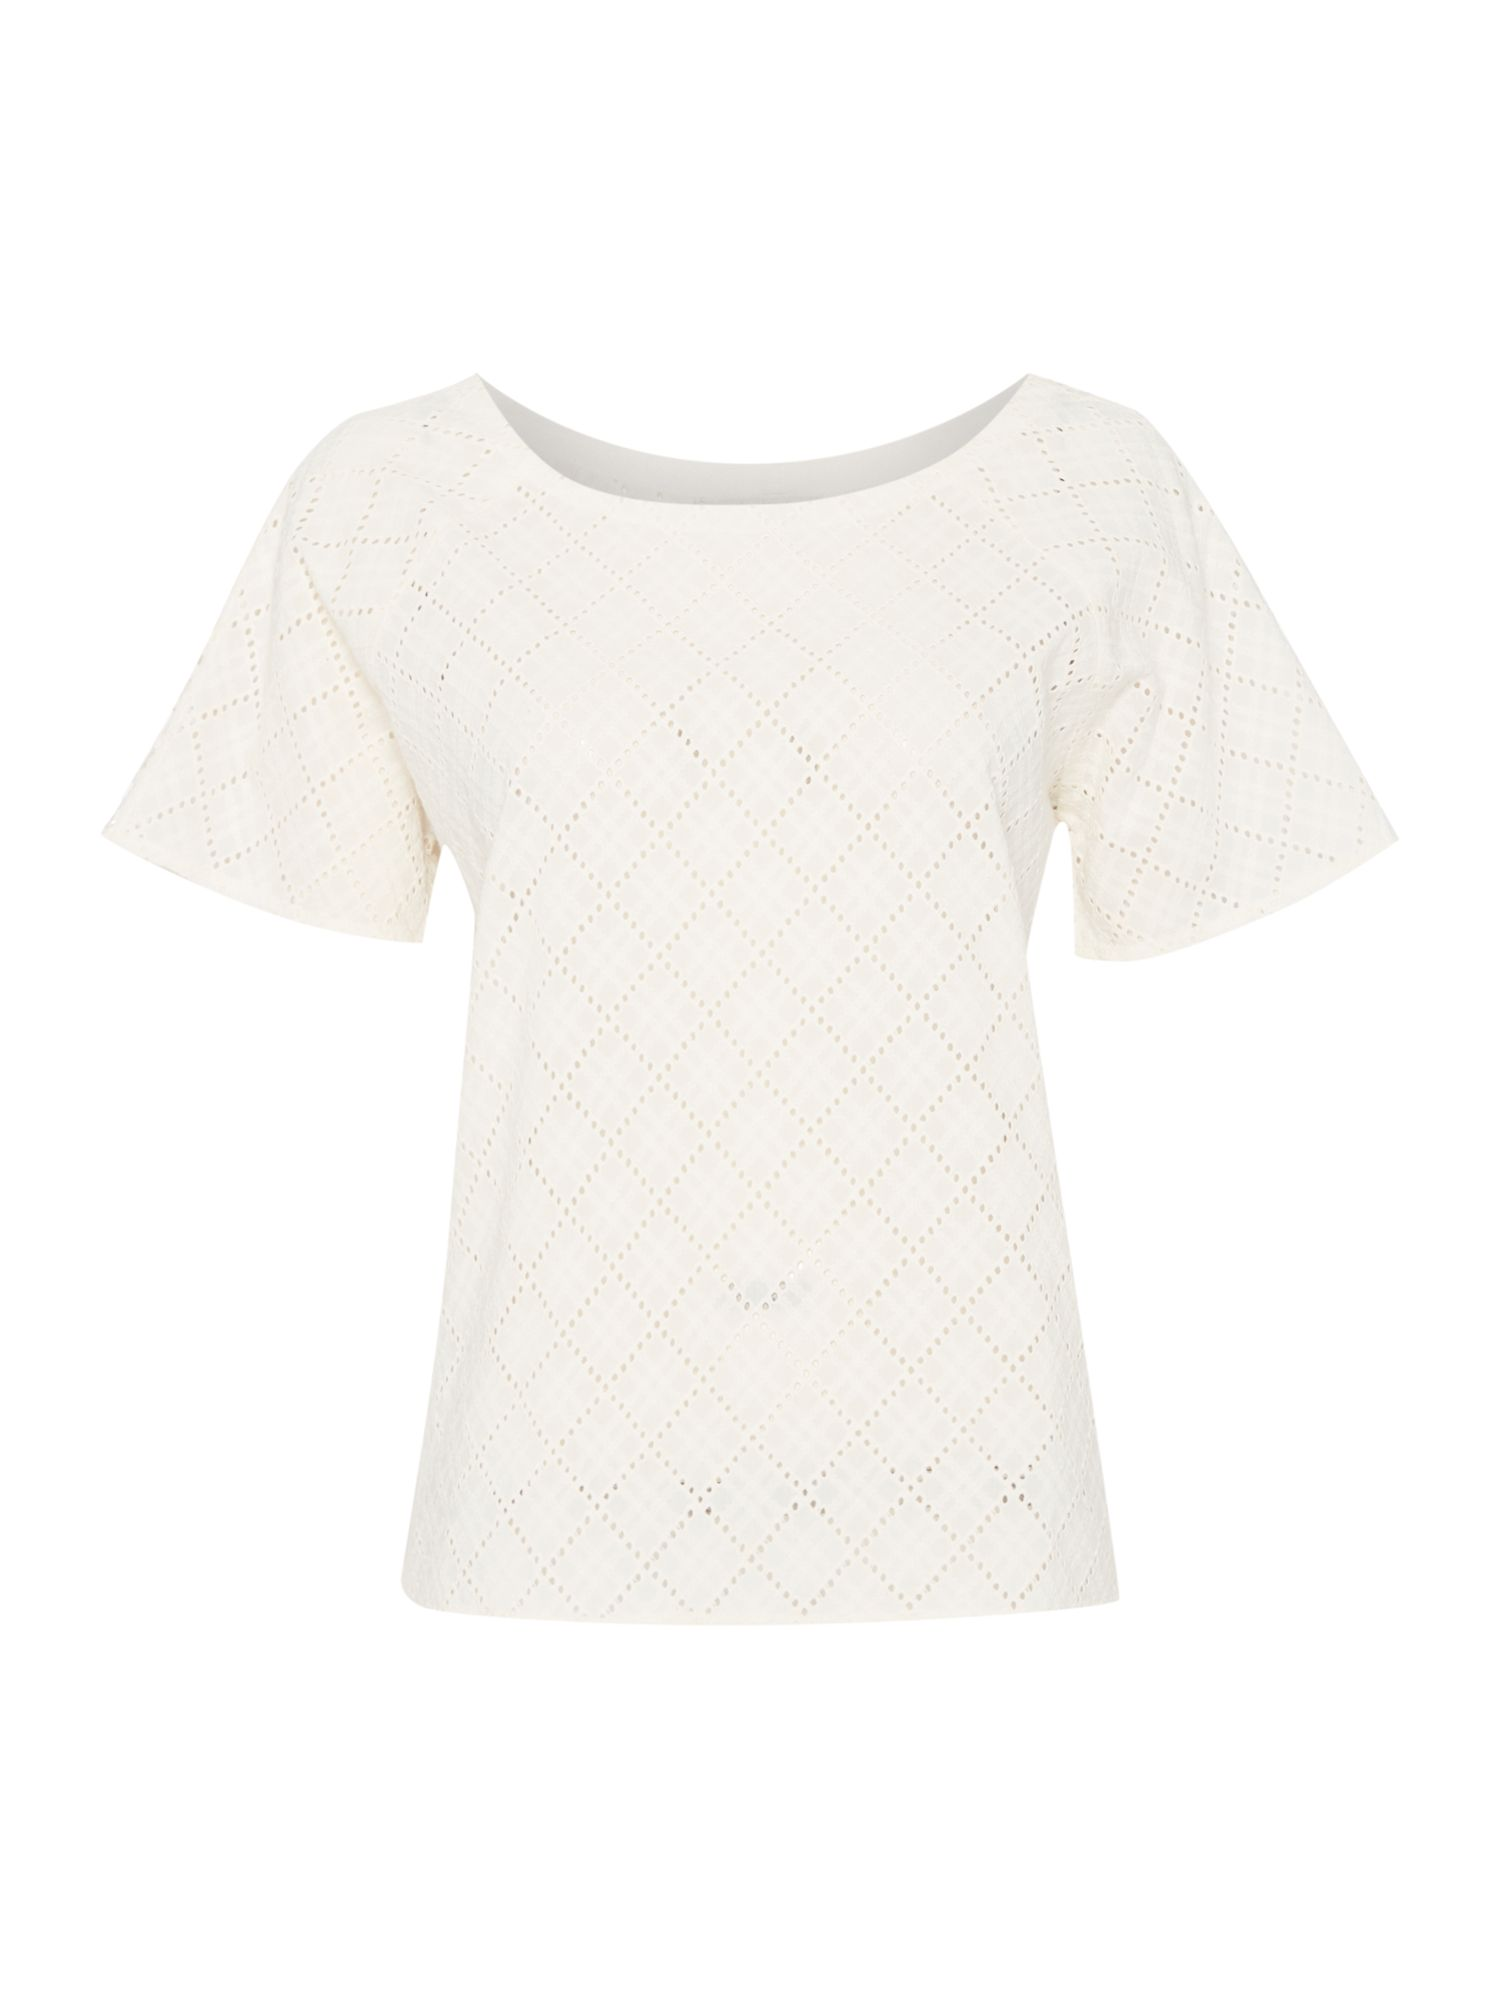 Maison De Nimes Beverly Broderie Woven Tee, Off White